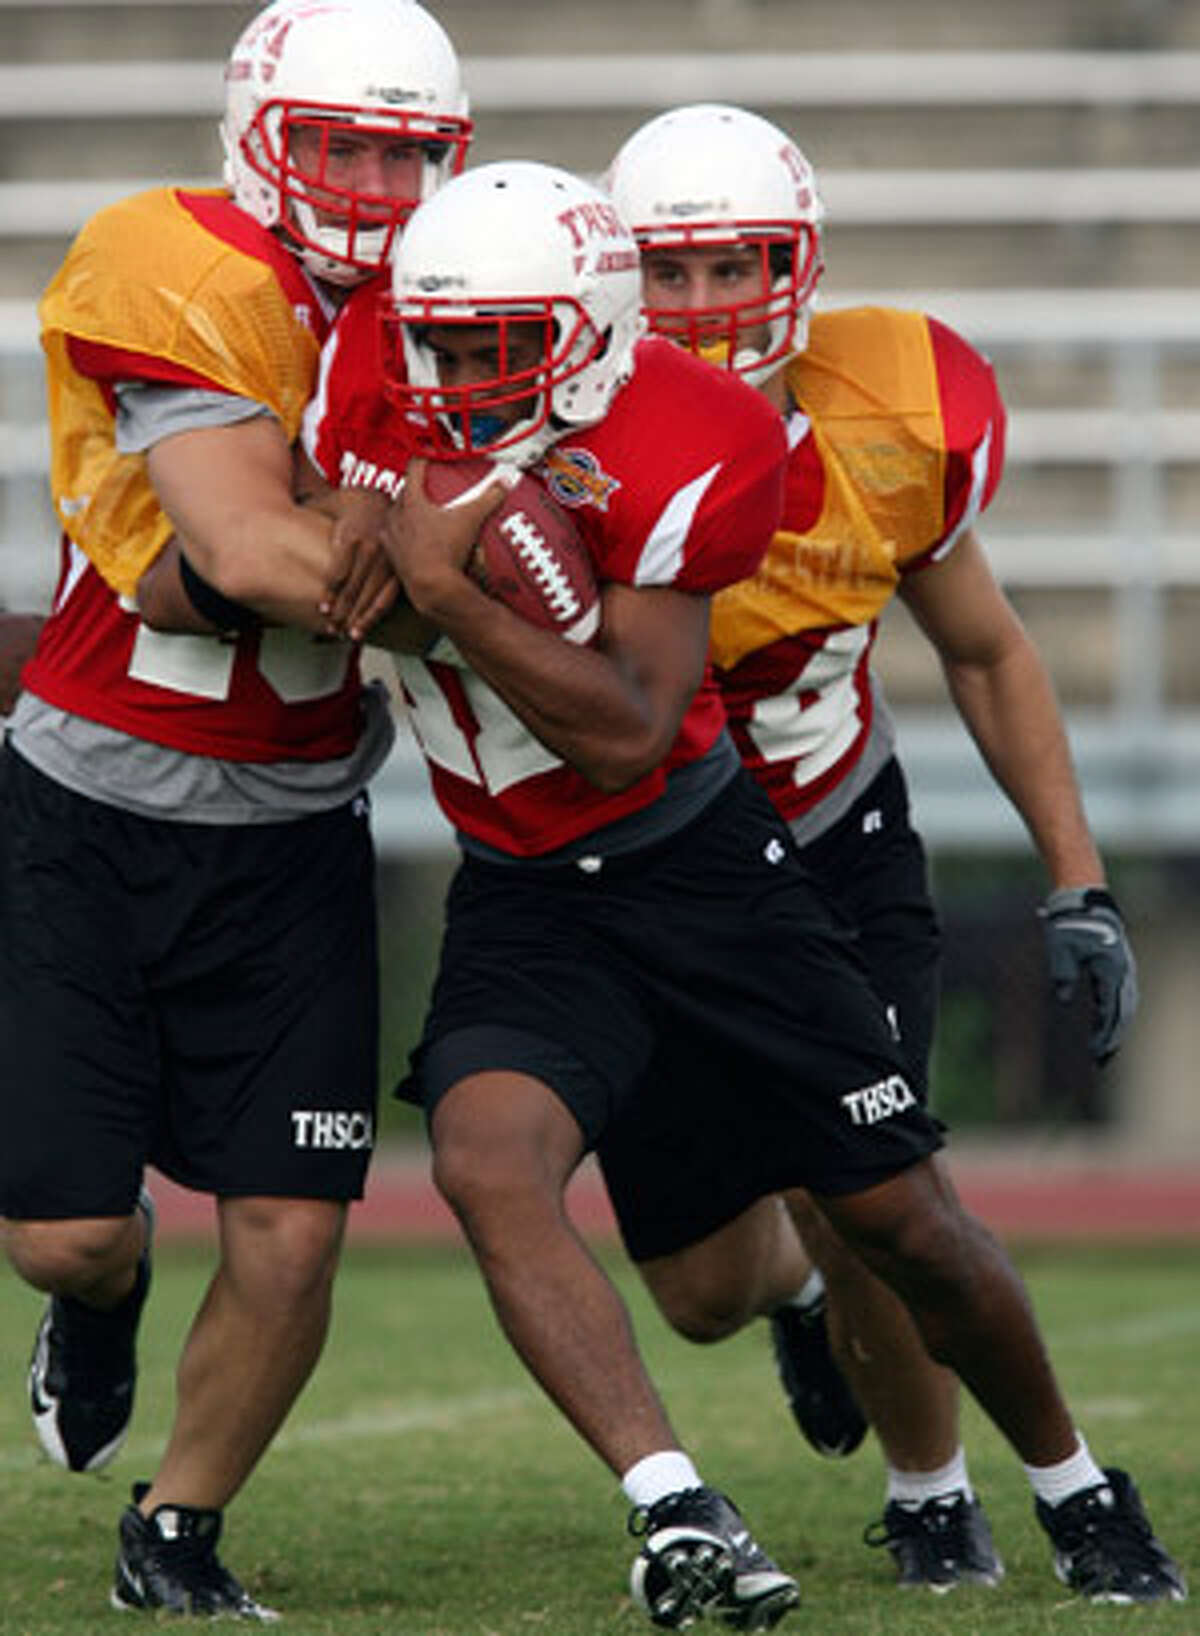 Former Wagner running back David Glasco (center) takes part in Monday?s practice for the THSCA all-star football game.